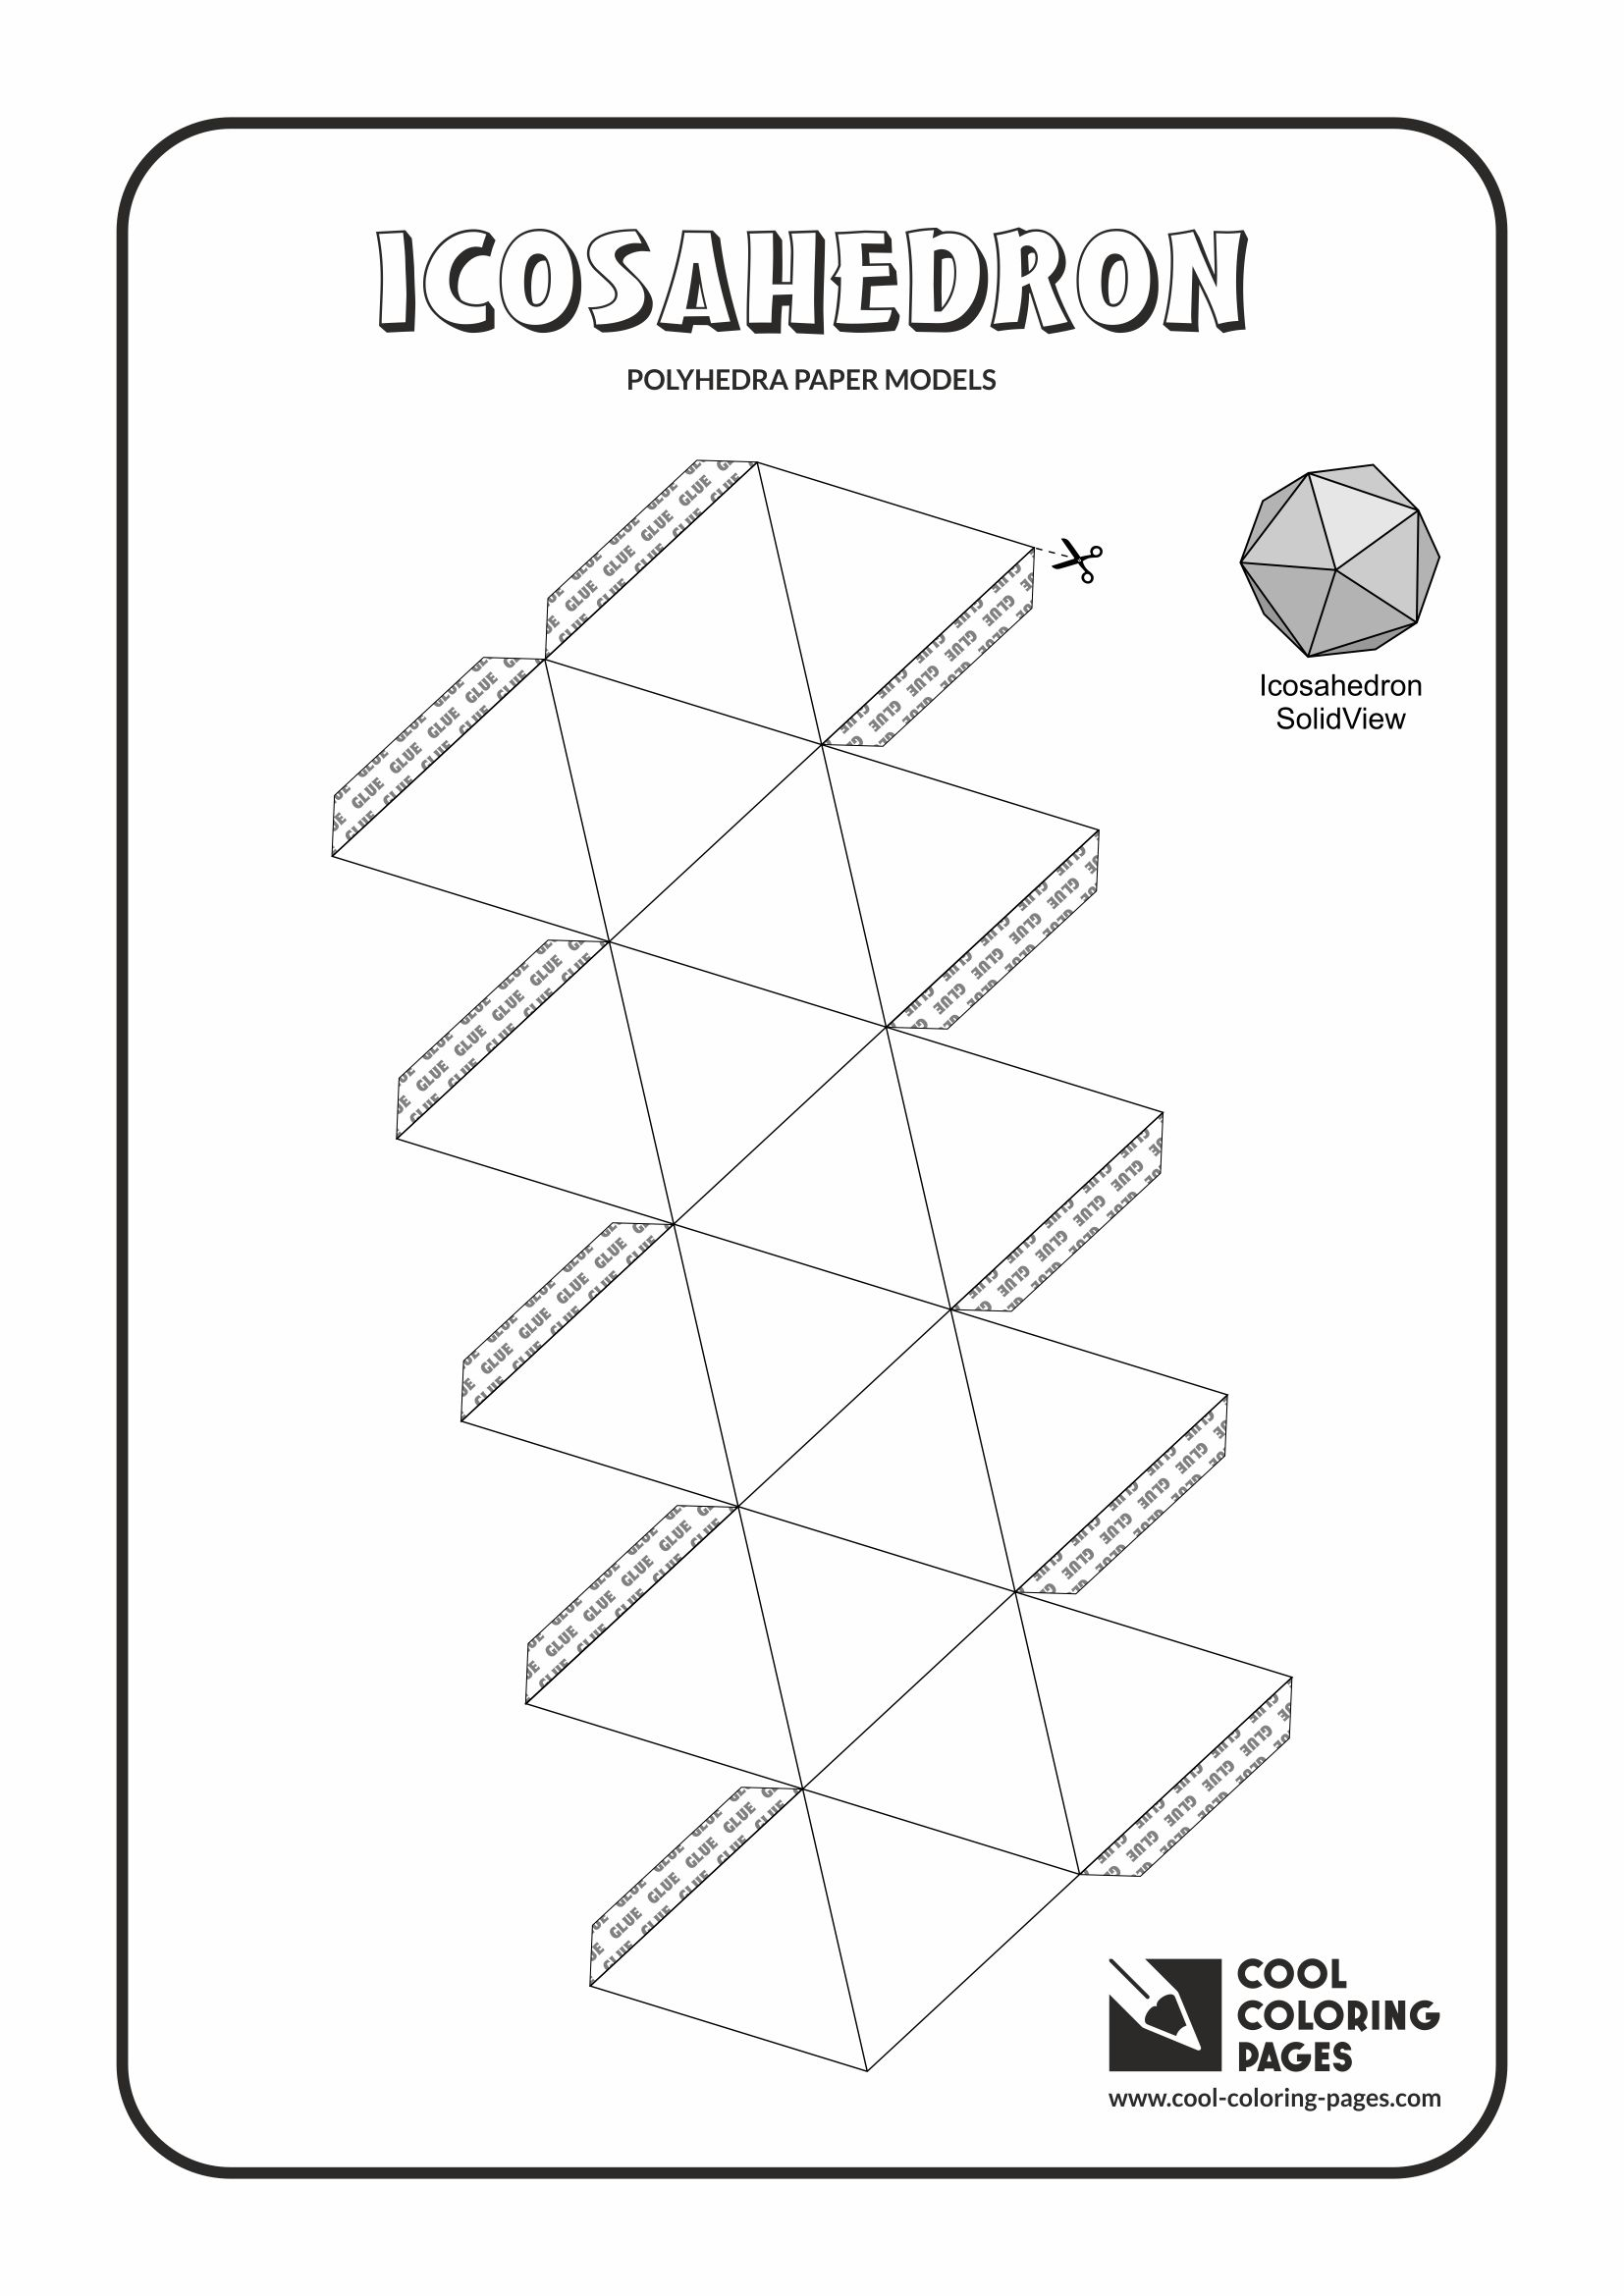 Cool Coloring Pages Paper Models Of Polyhedra Cool